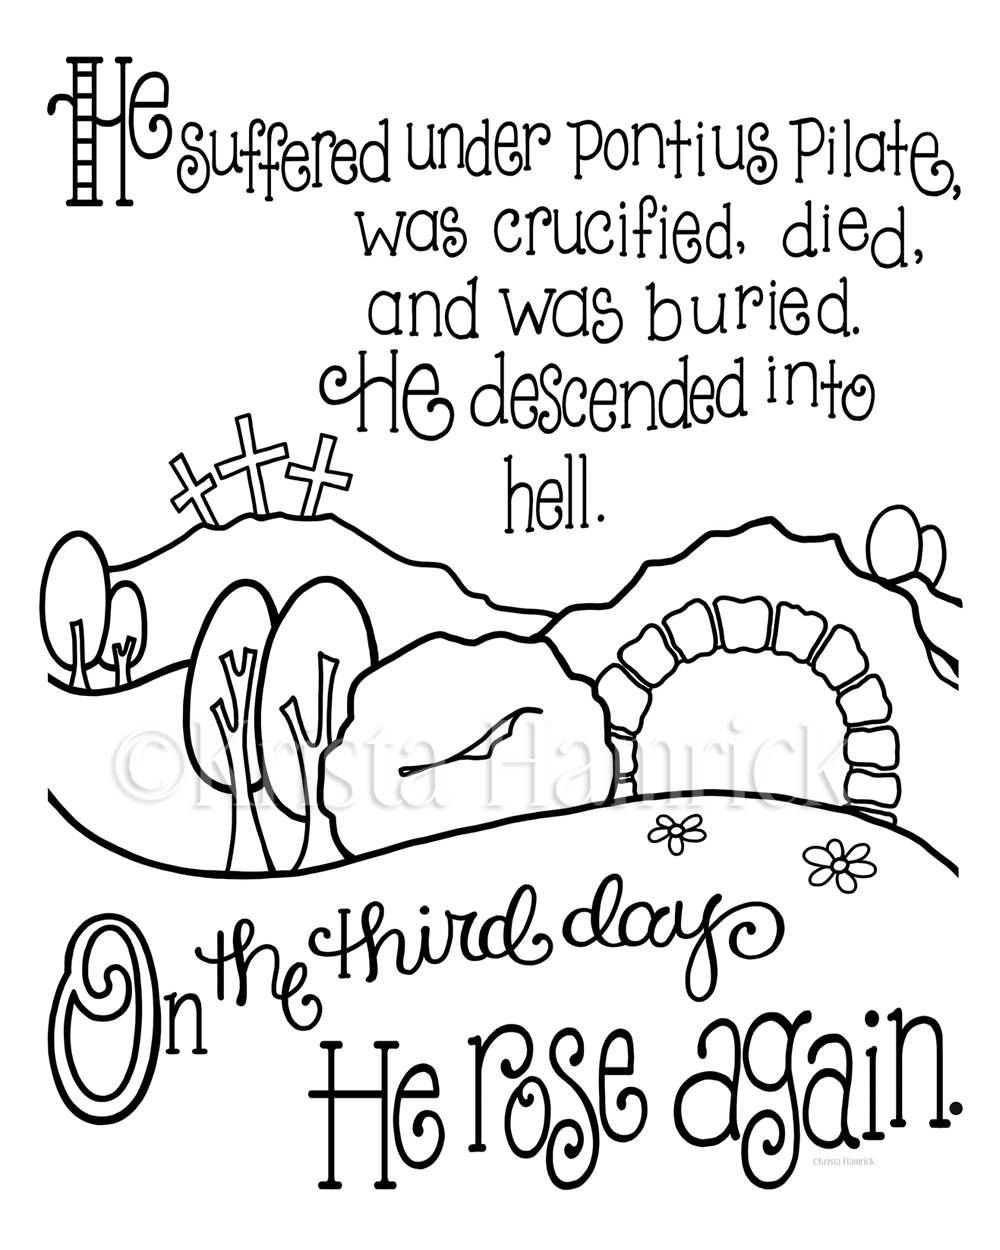 Apostles Creed Memory Coloring Collection Includes 9 Coloring Pages For Memorization Or Lessons Memorizzazione Age